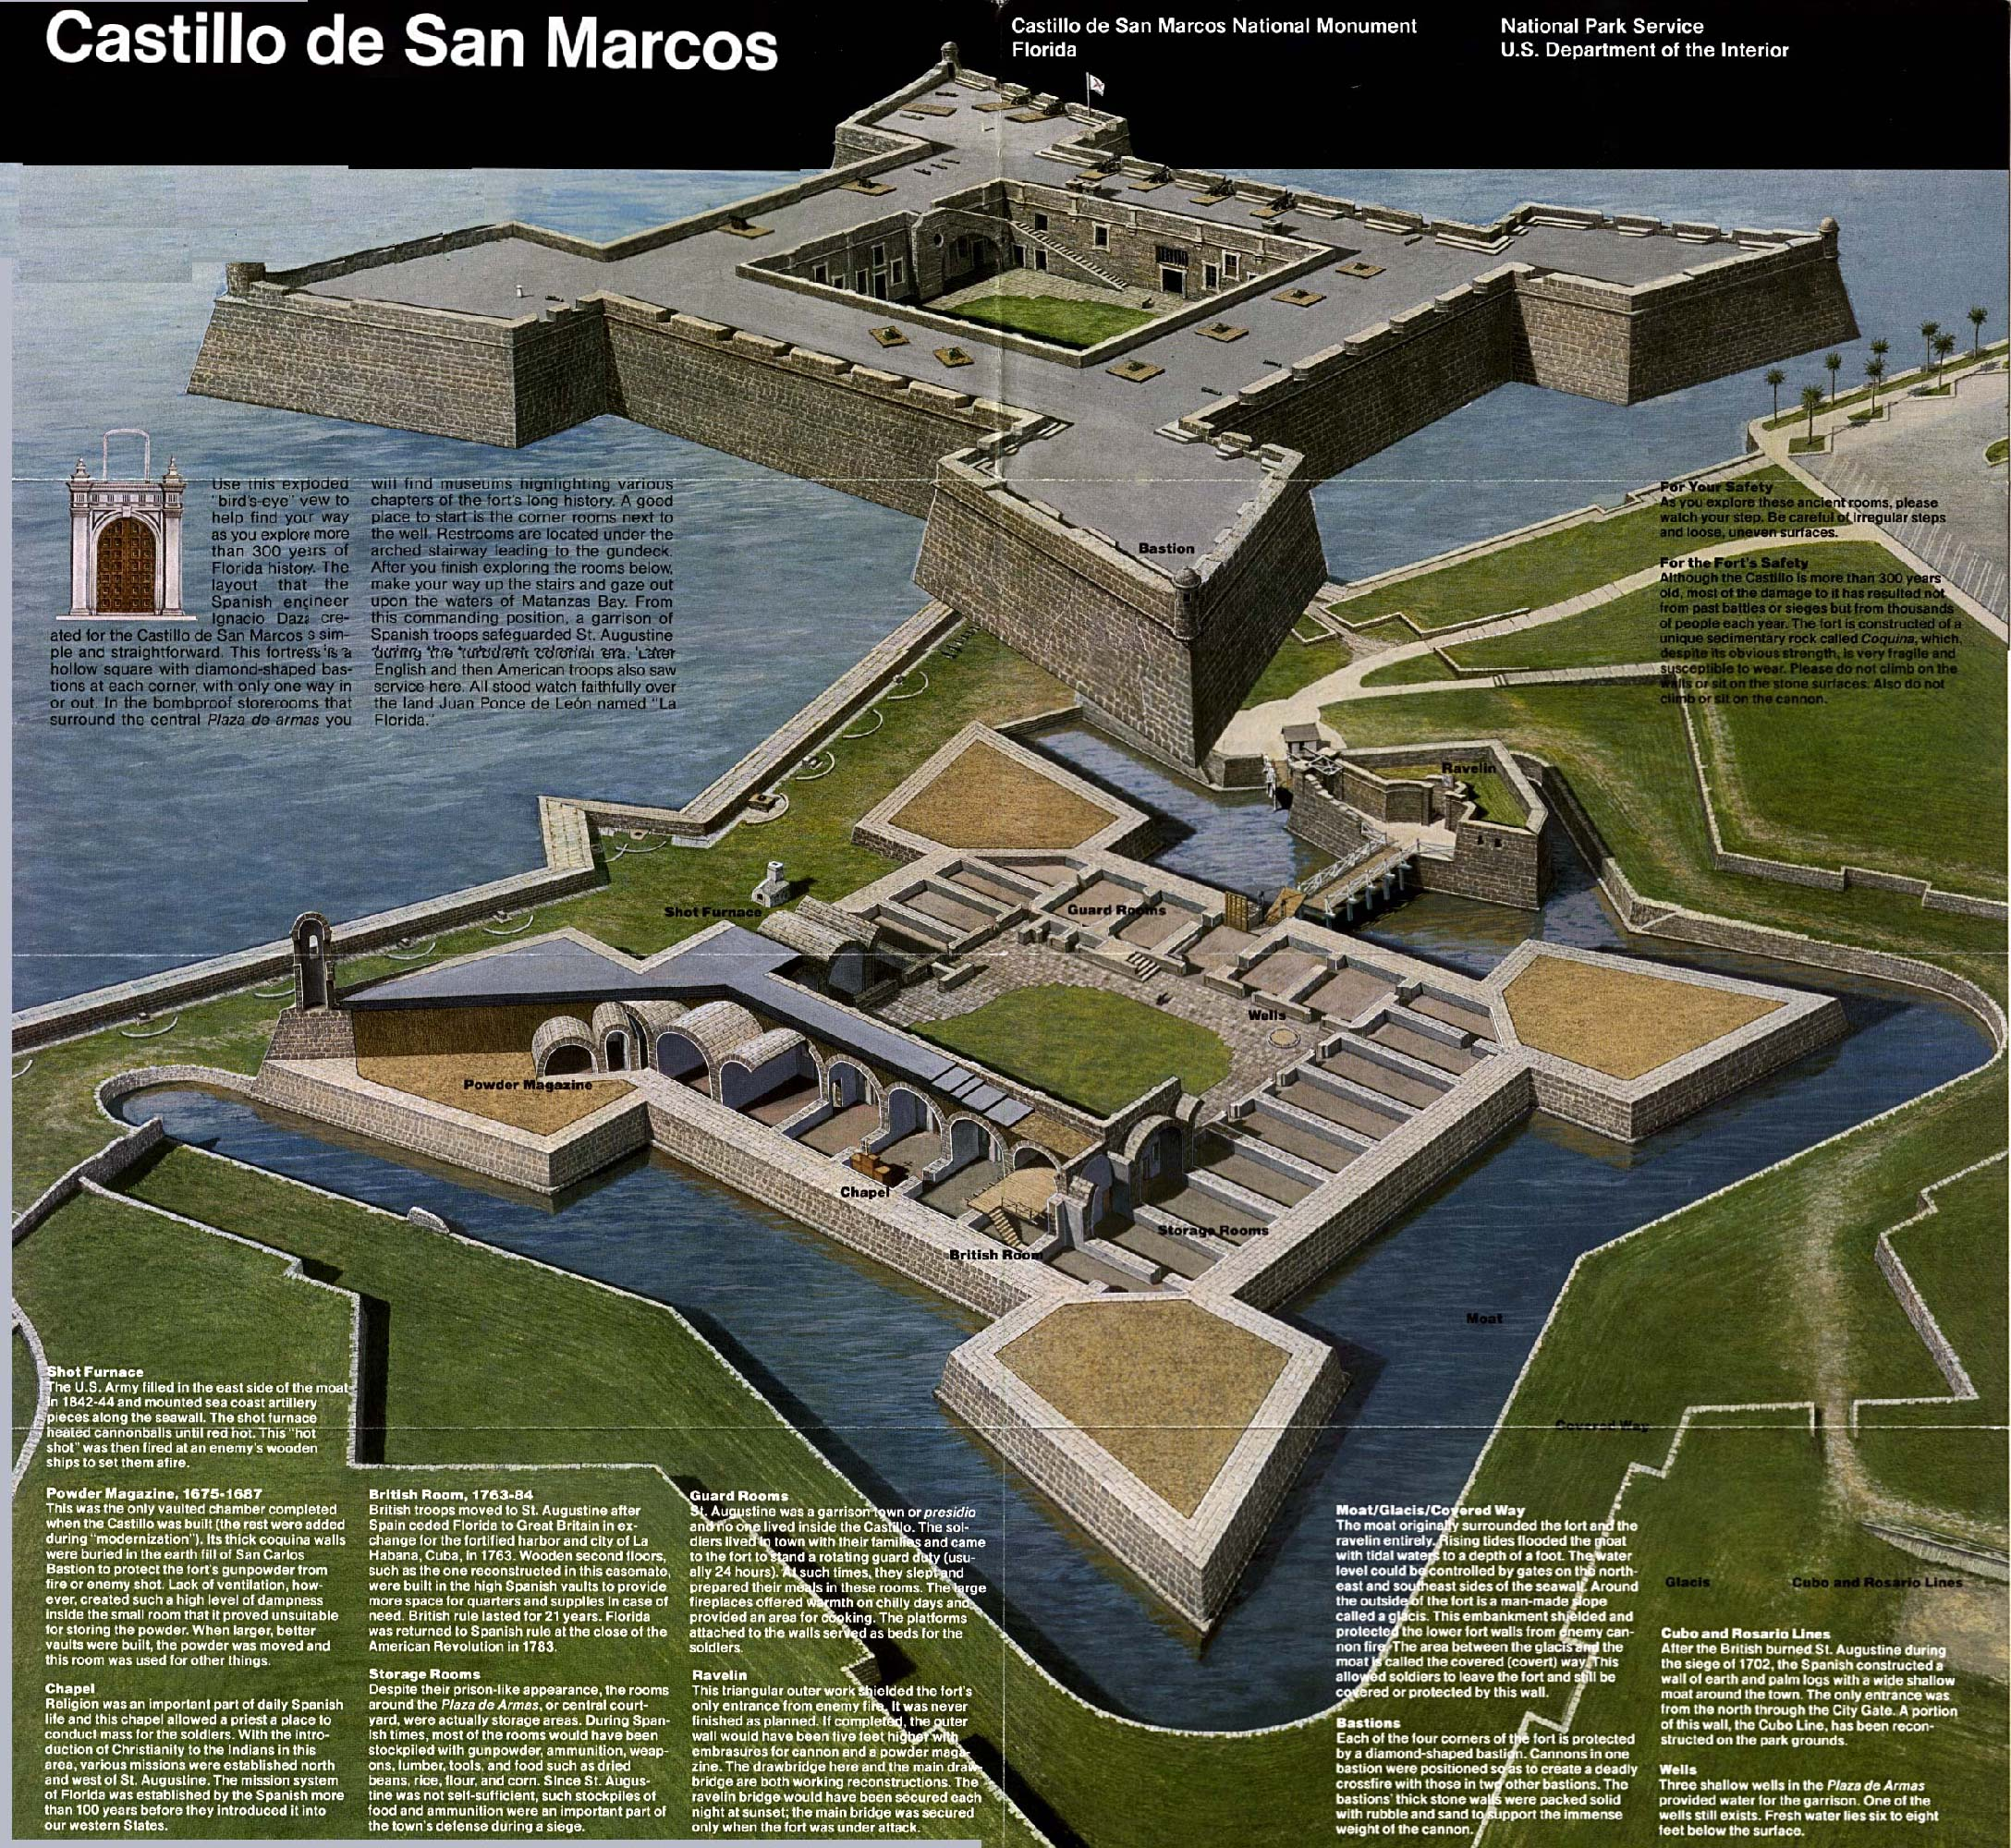 National Park Service brochure showing an exploded view drawing of Castillo de San Marcos.